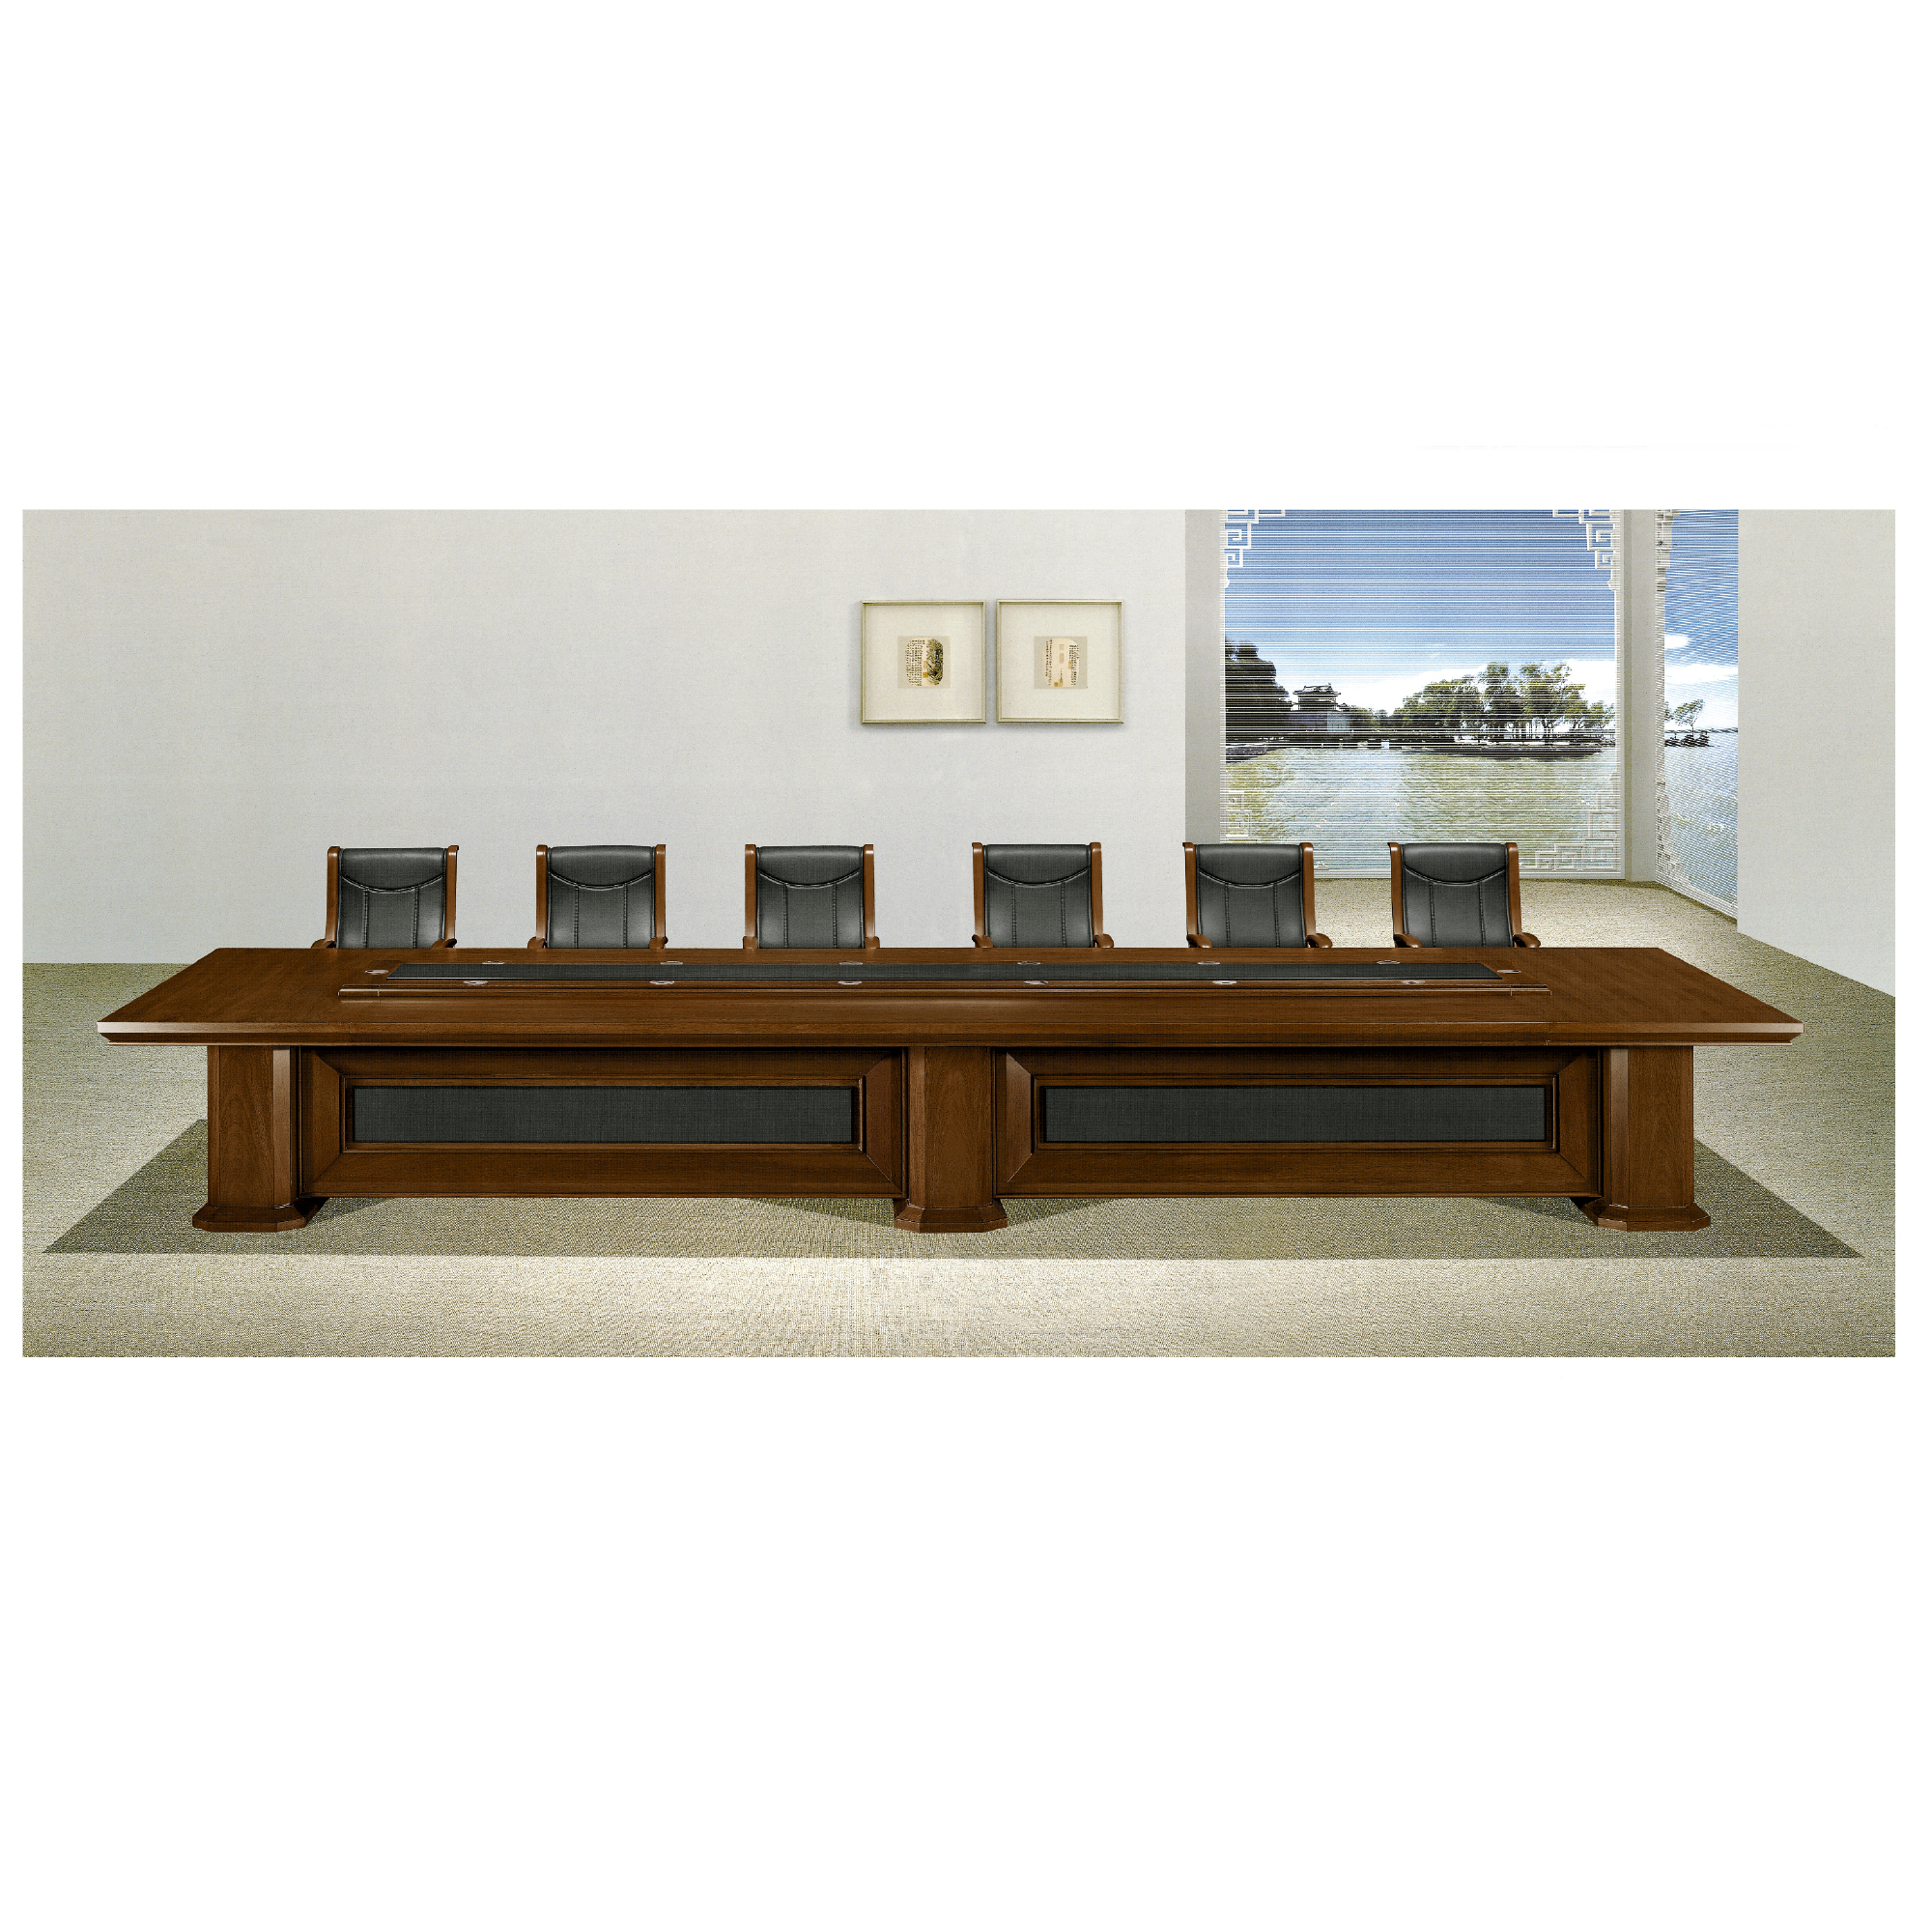 20 Person Conference Table Specifications Meeting Table